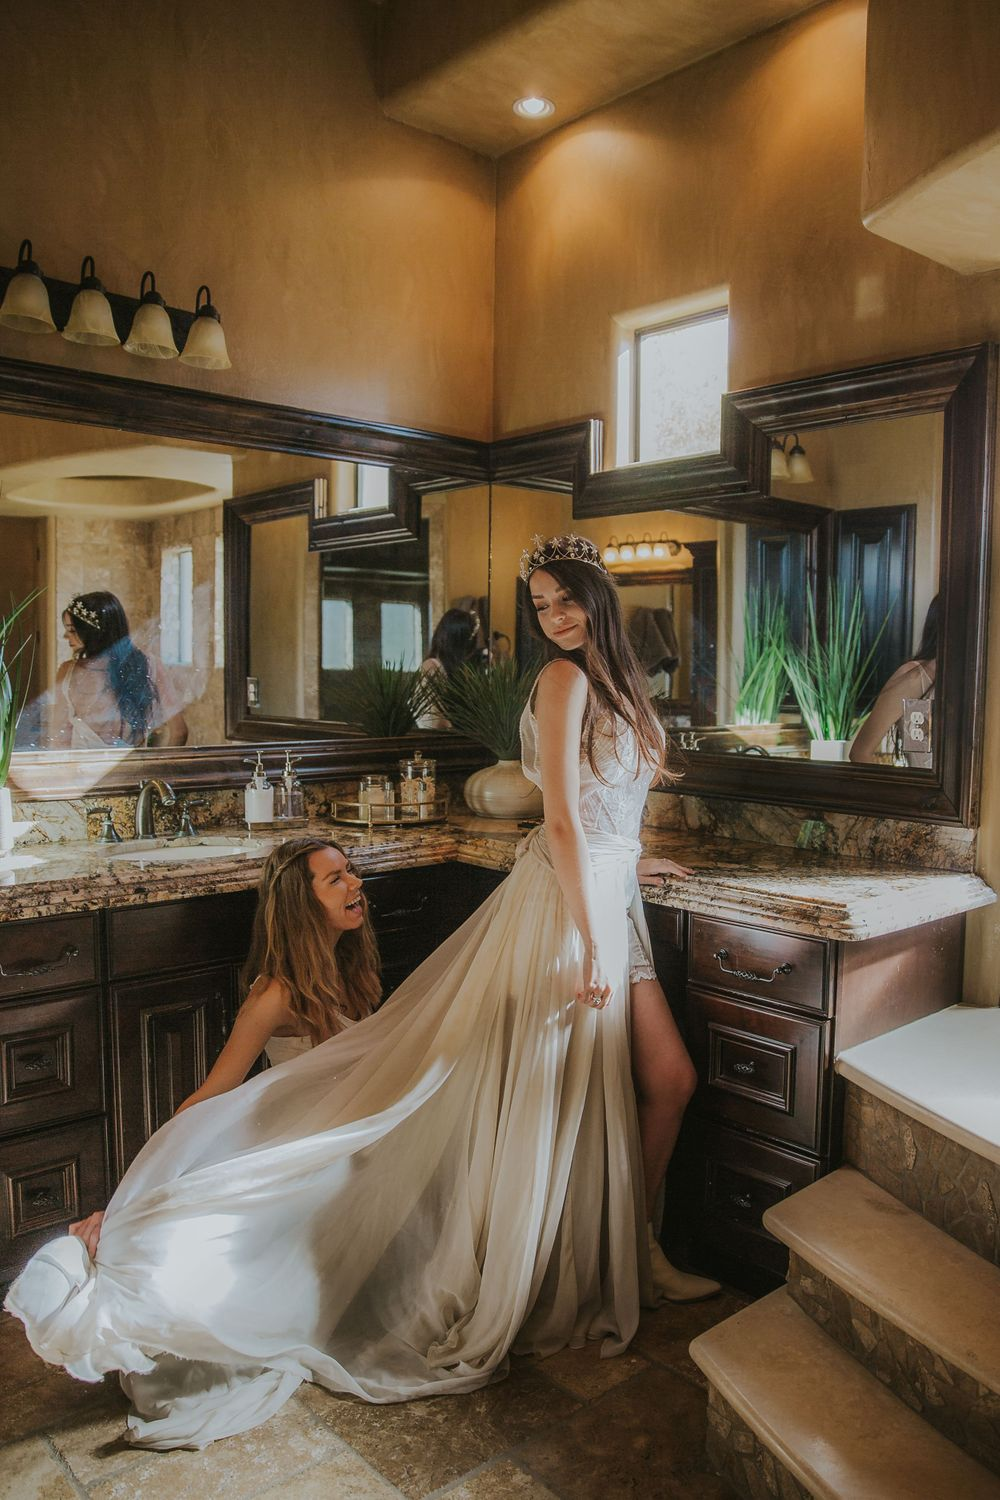 rebecca skidgel photography mesa arizona wedding bride getting ready with maid of honor bridesmaid